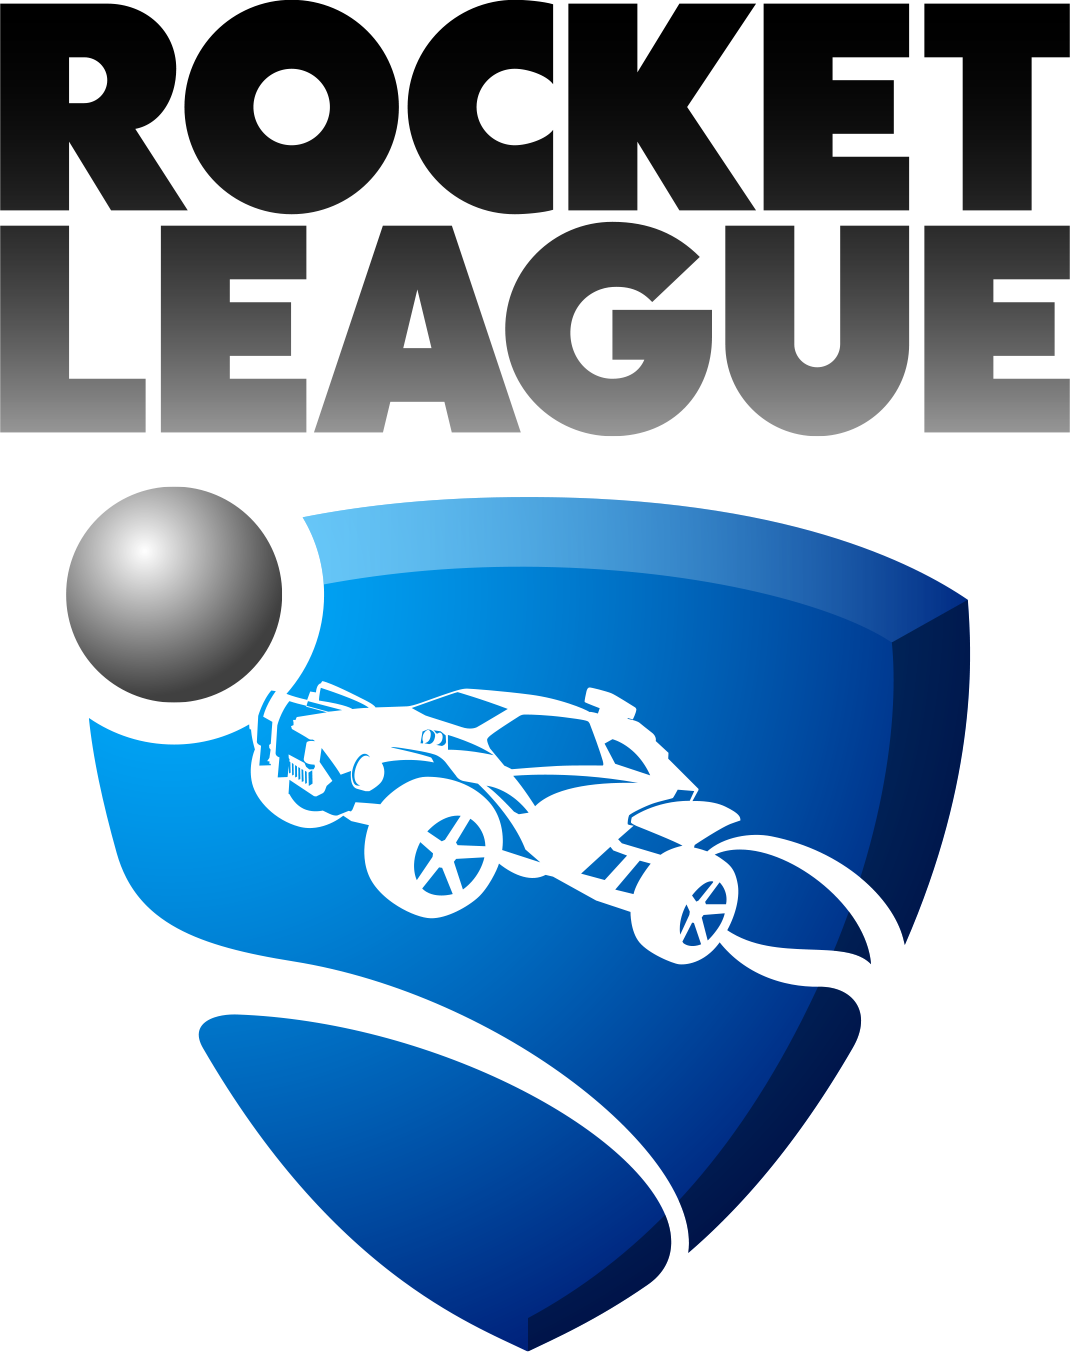 youtube clipart rocket league #148958652